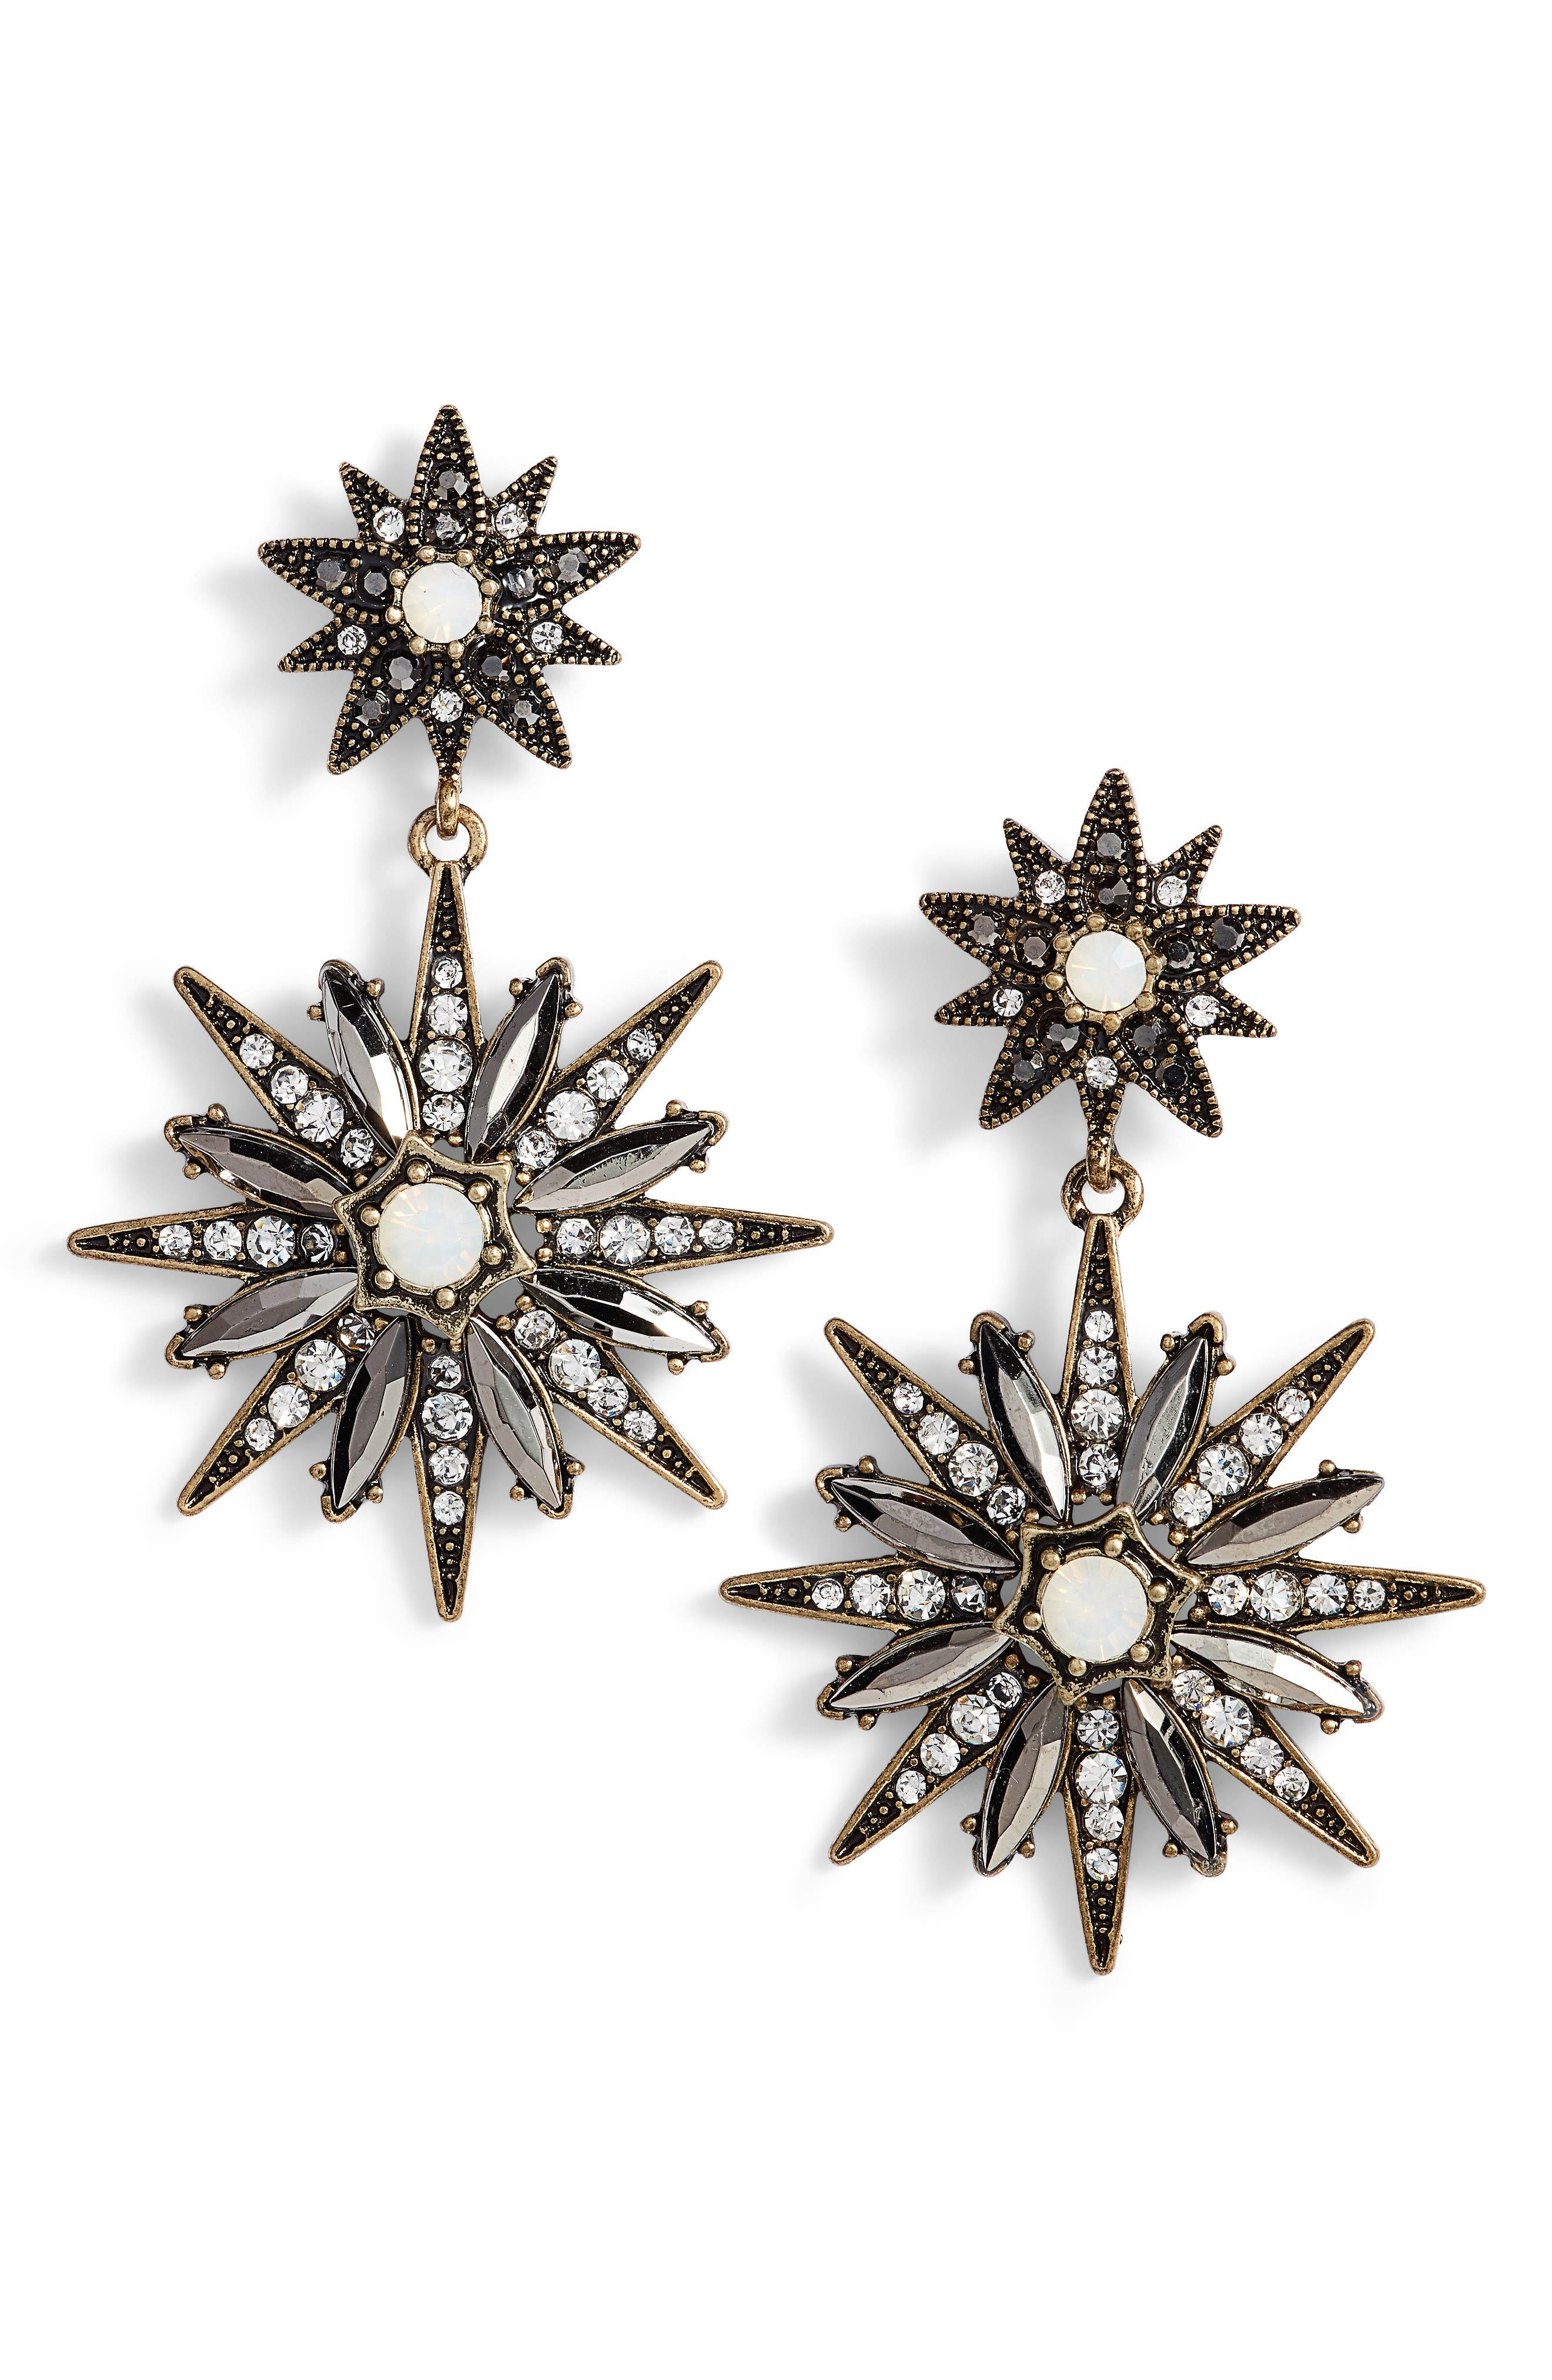 Starburst Statement Earrings,                         Main,                         color, Antique Gold/ Black